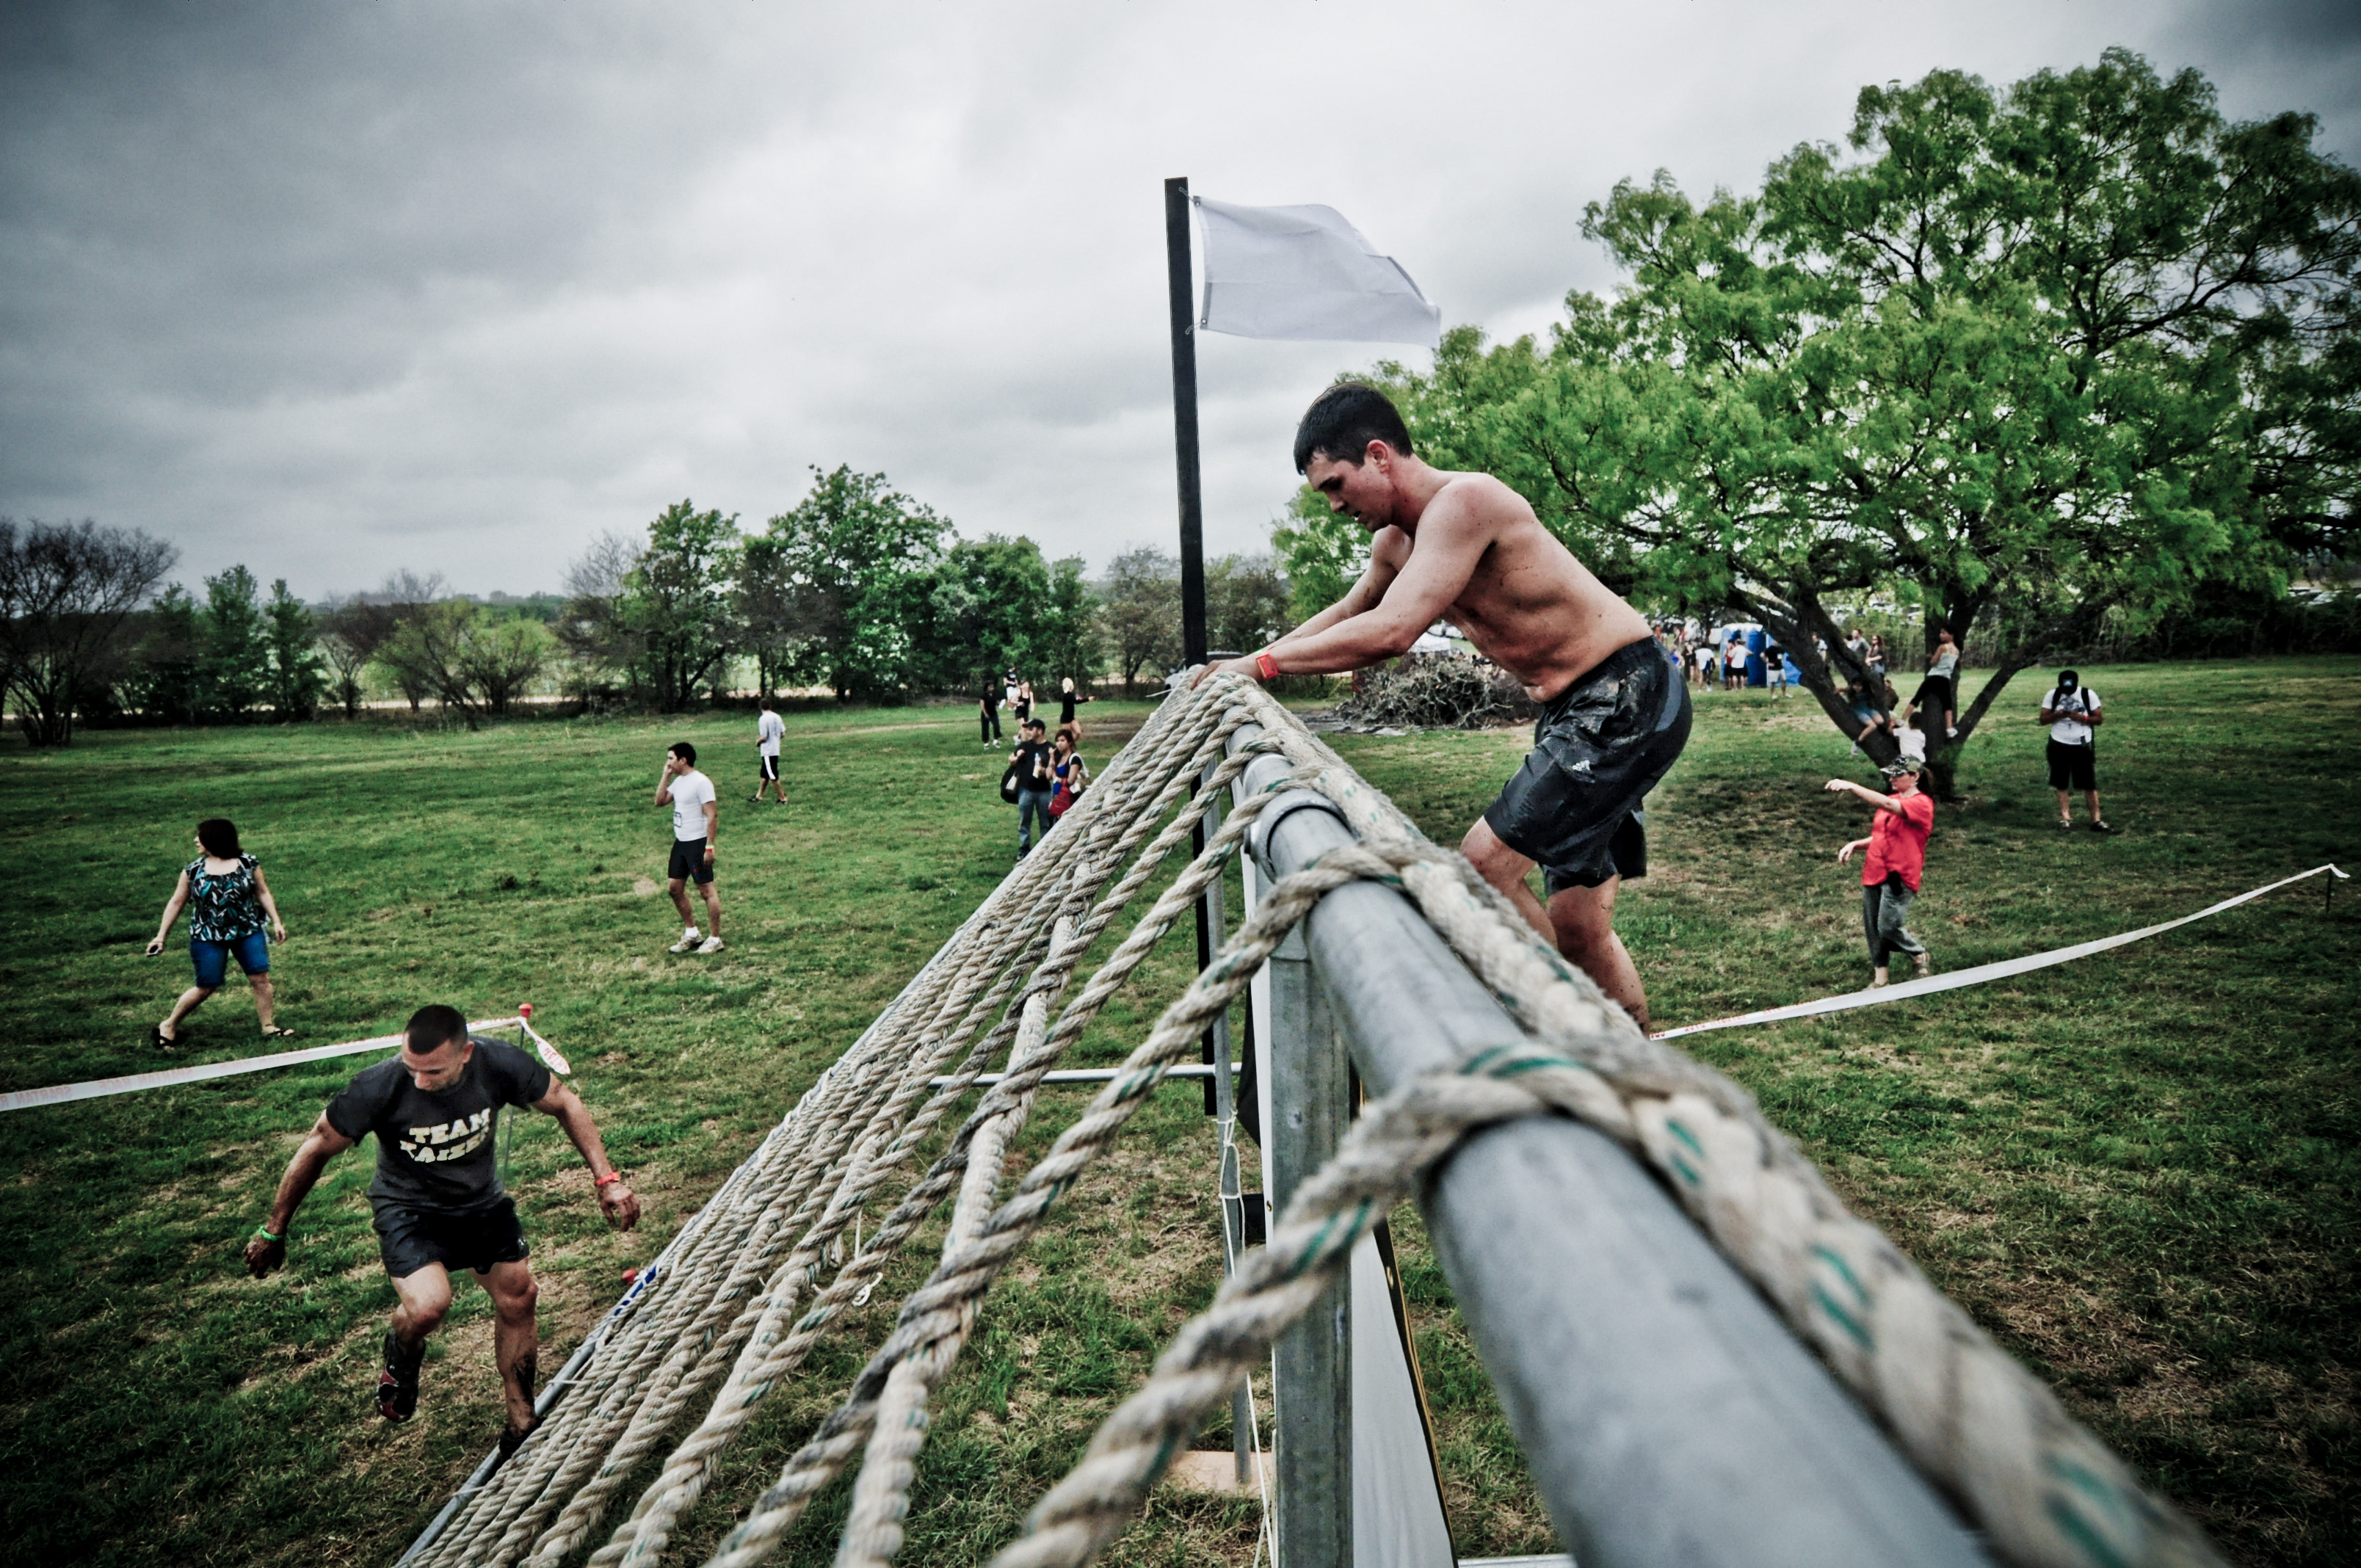 Obstacle Races Are Fitness Fun